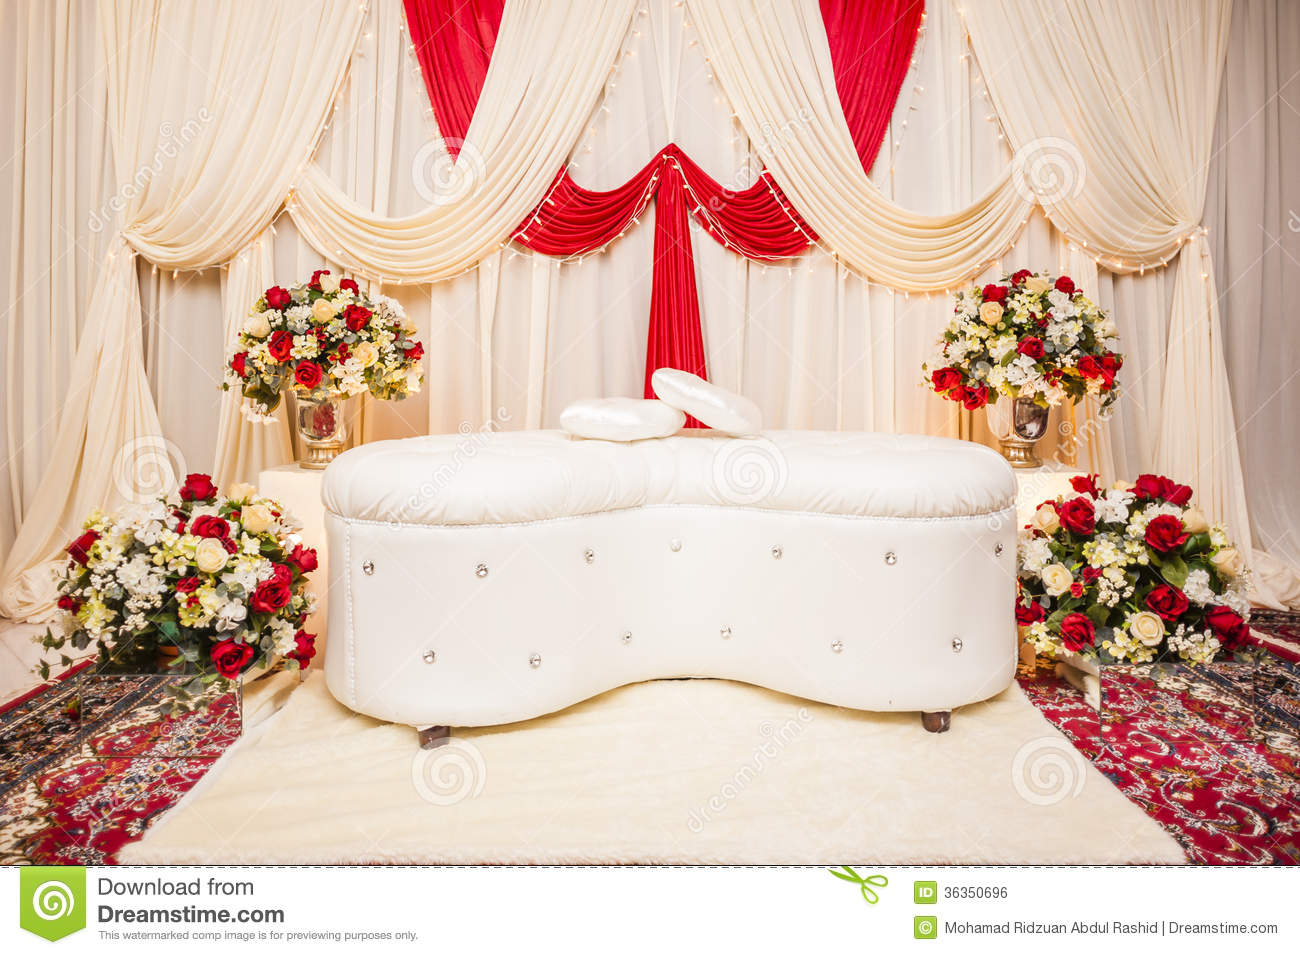 Wedding altar royalty free stock image image 36350696 for Photo decoration